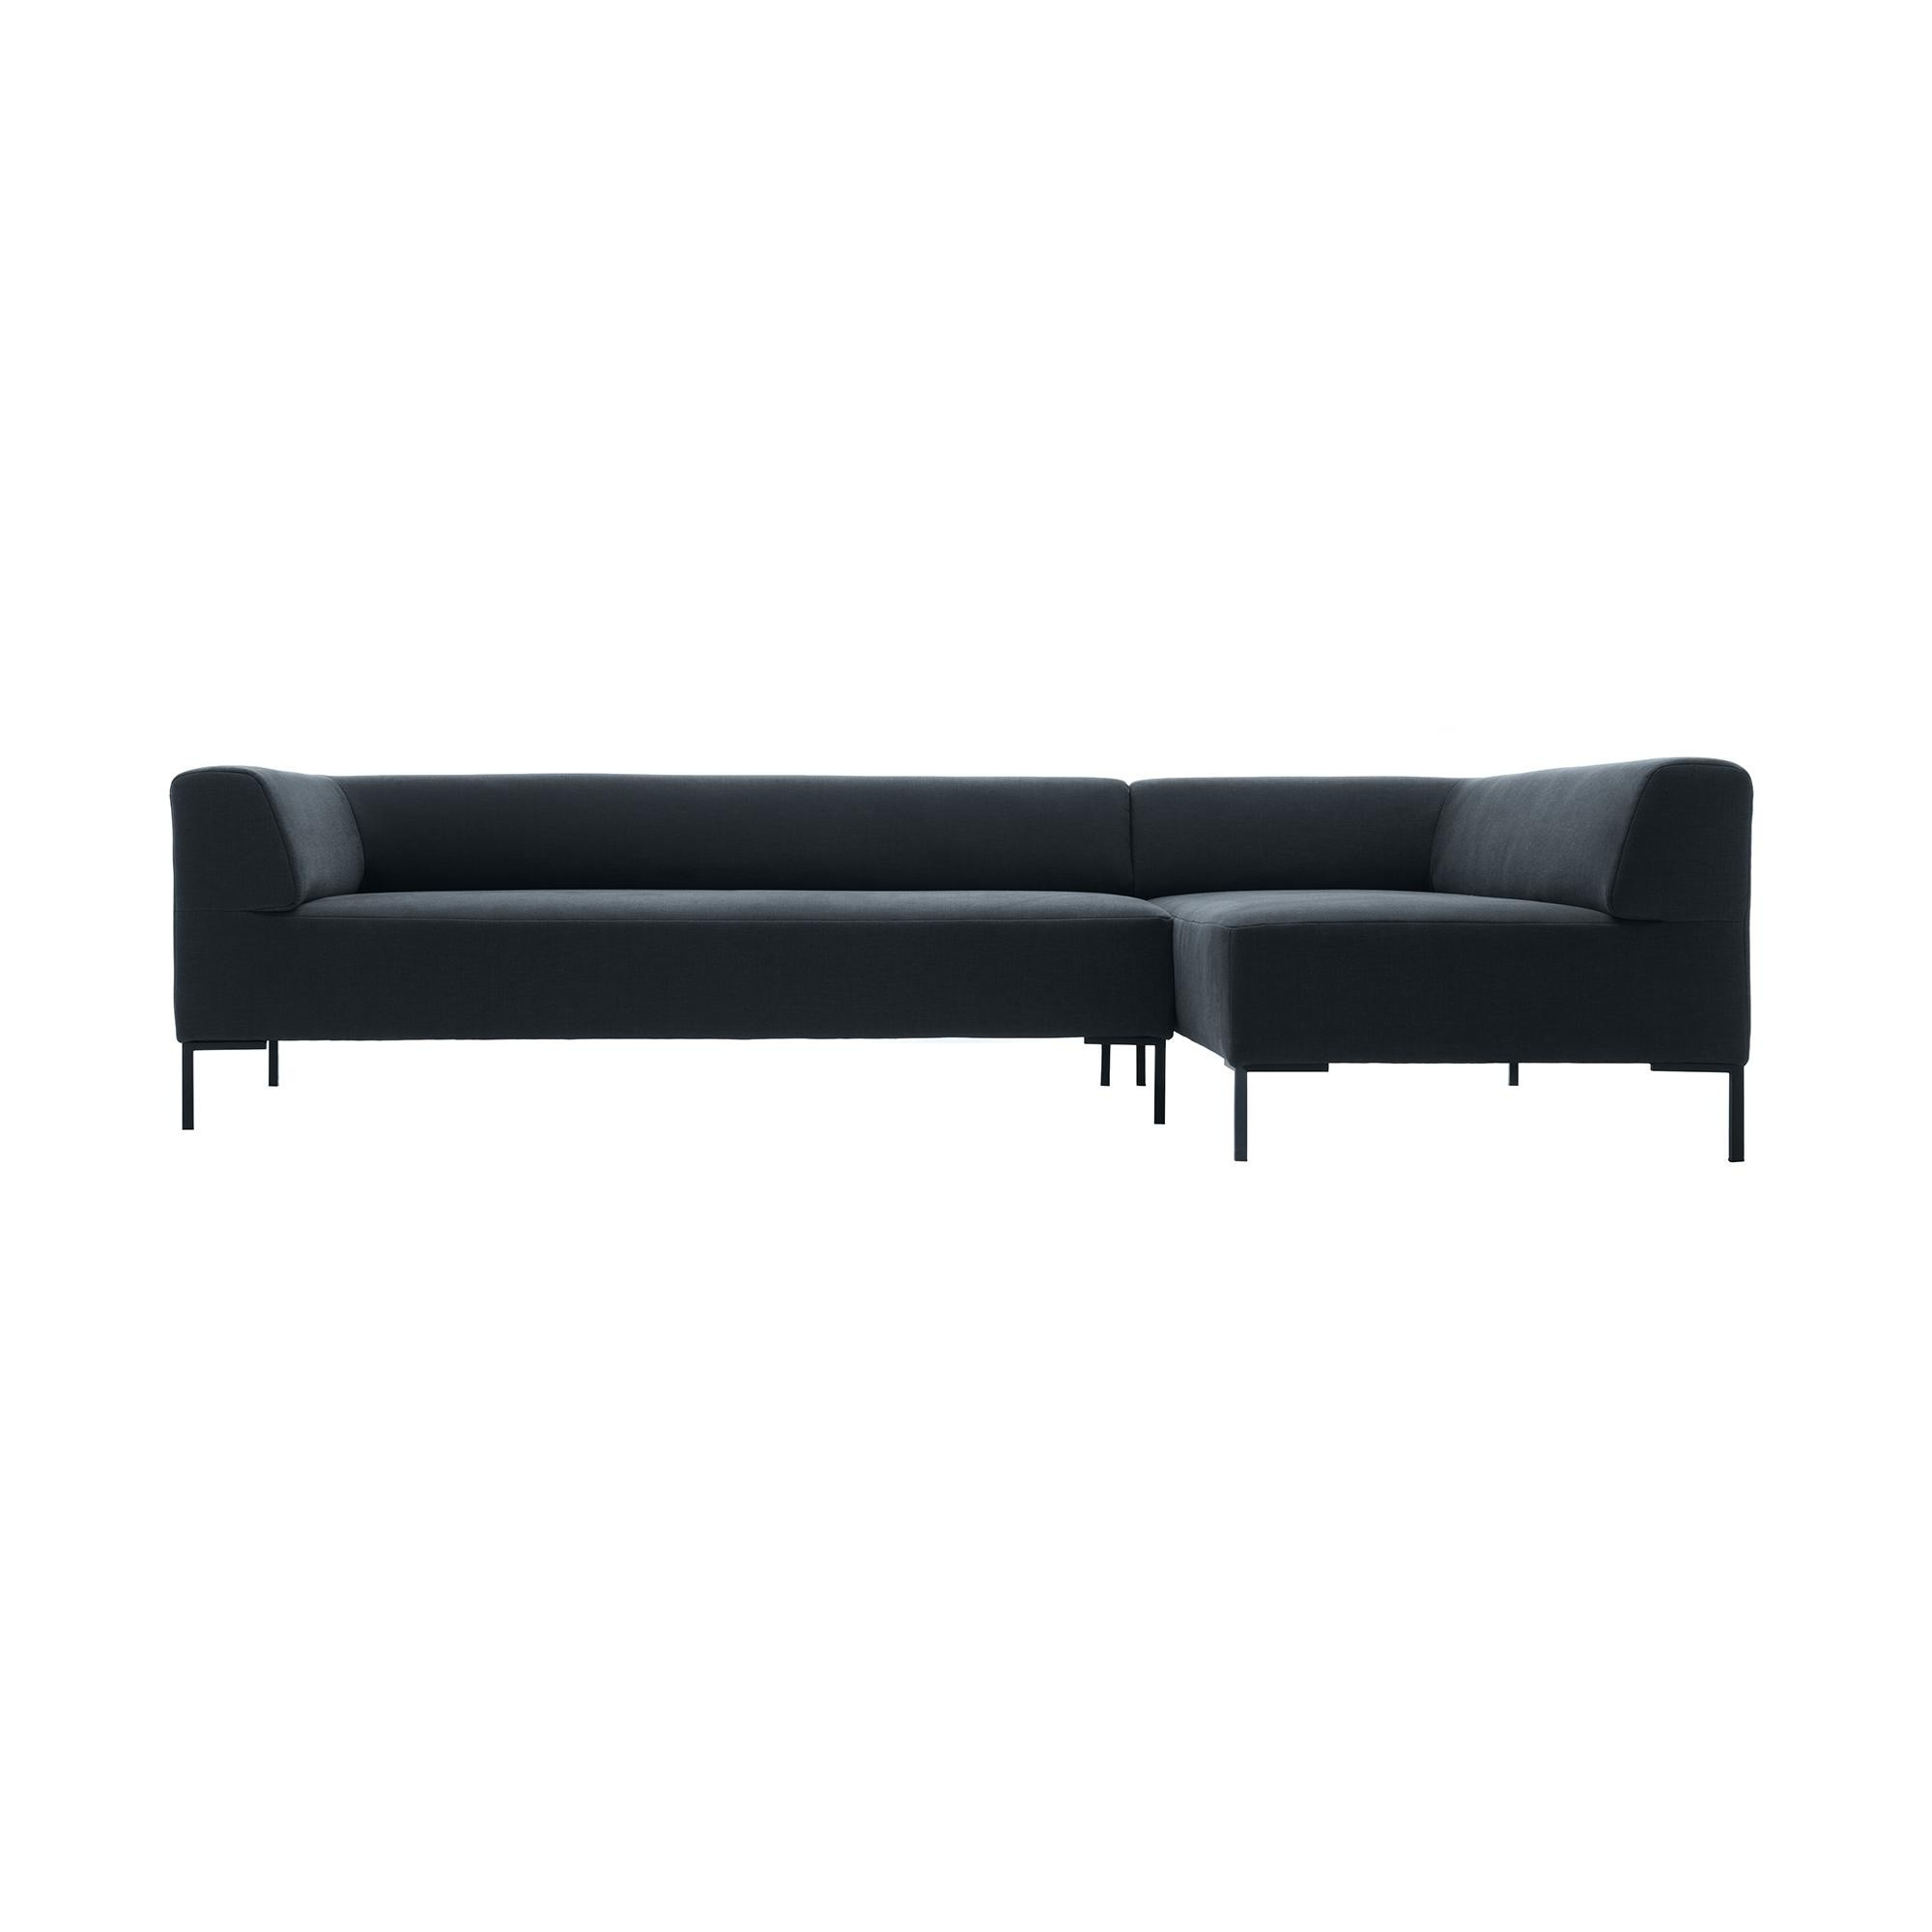 Freistil Rolf Benz Freistil 185 Loungesofa 257x180cm Ambientedirect